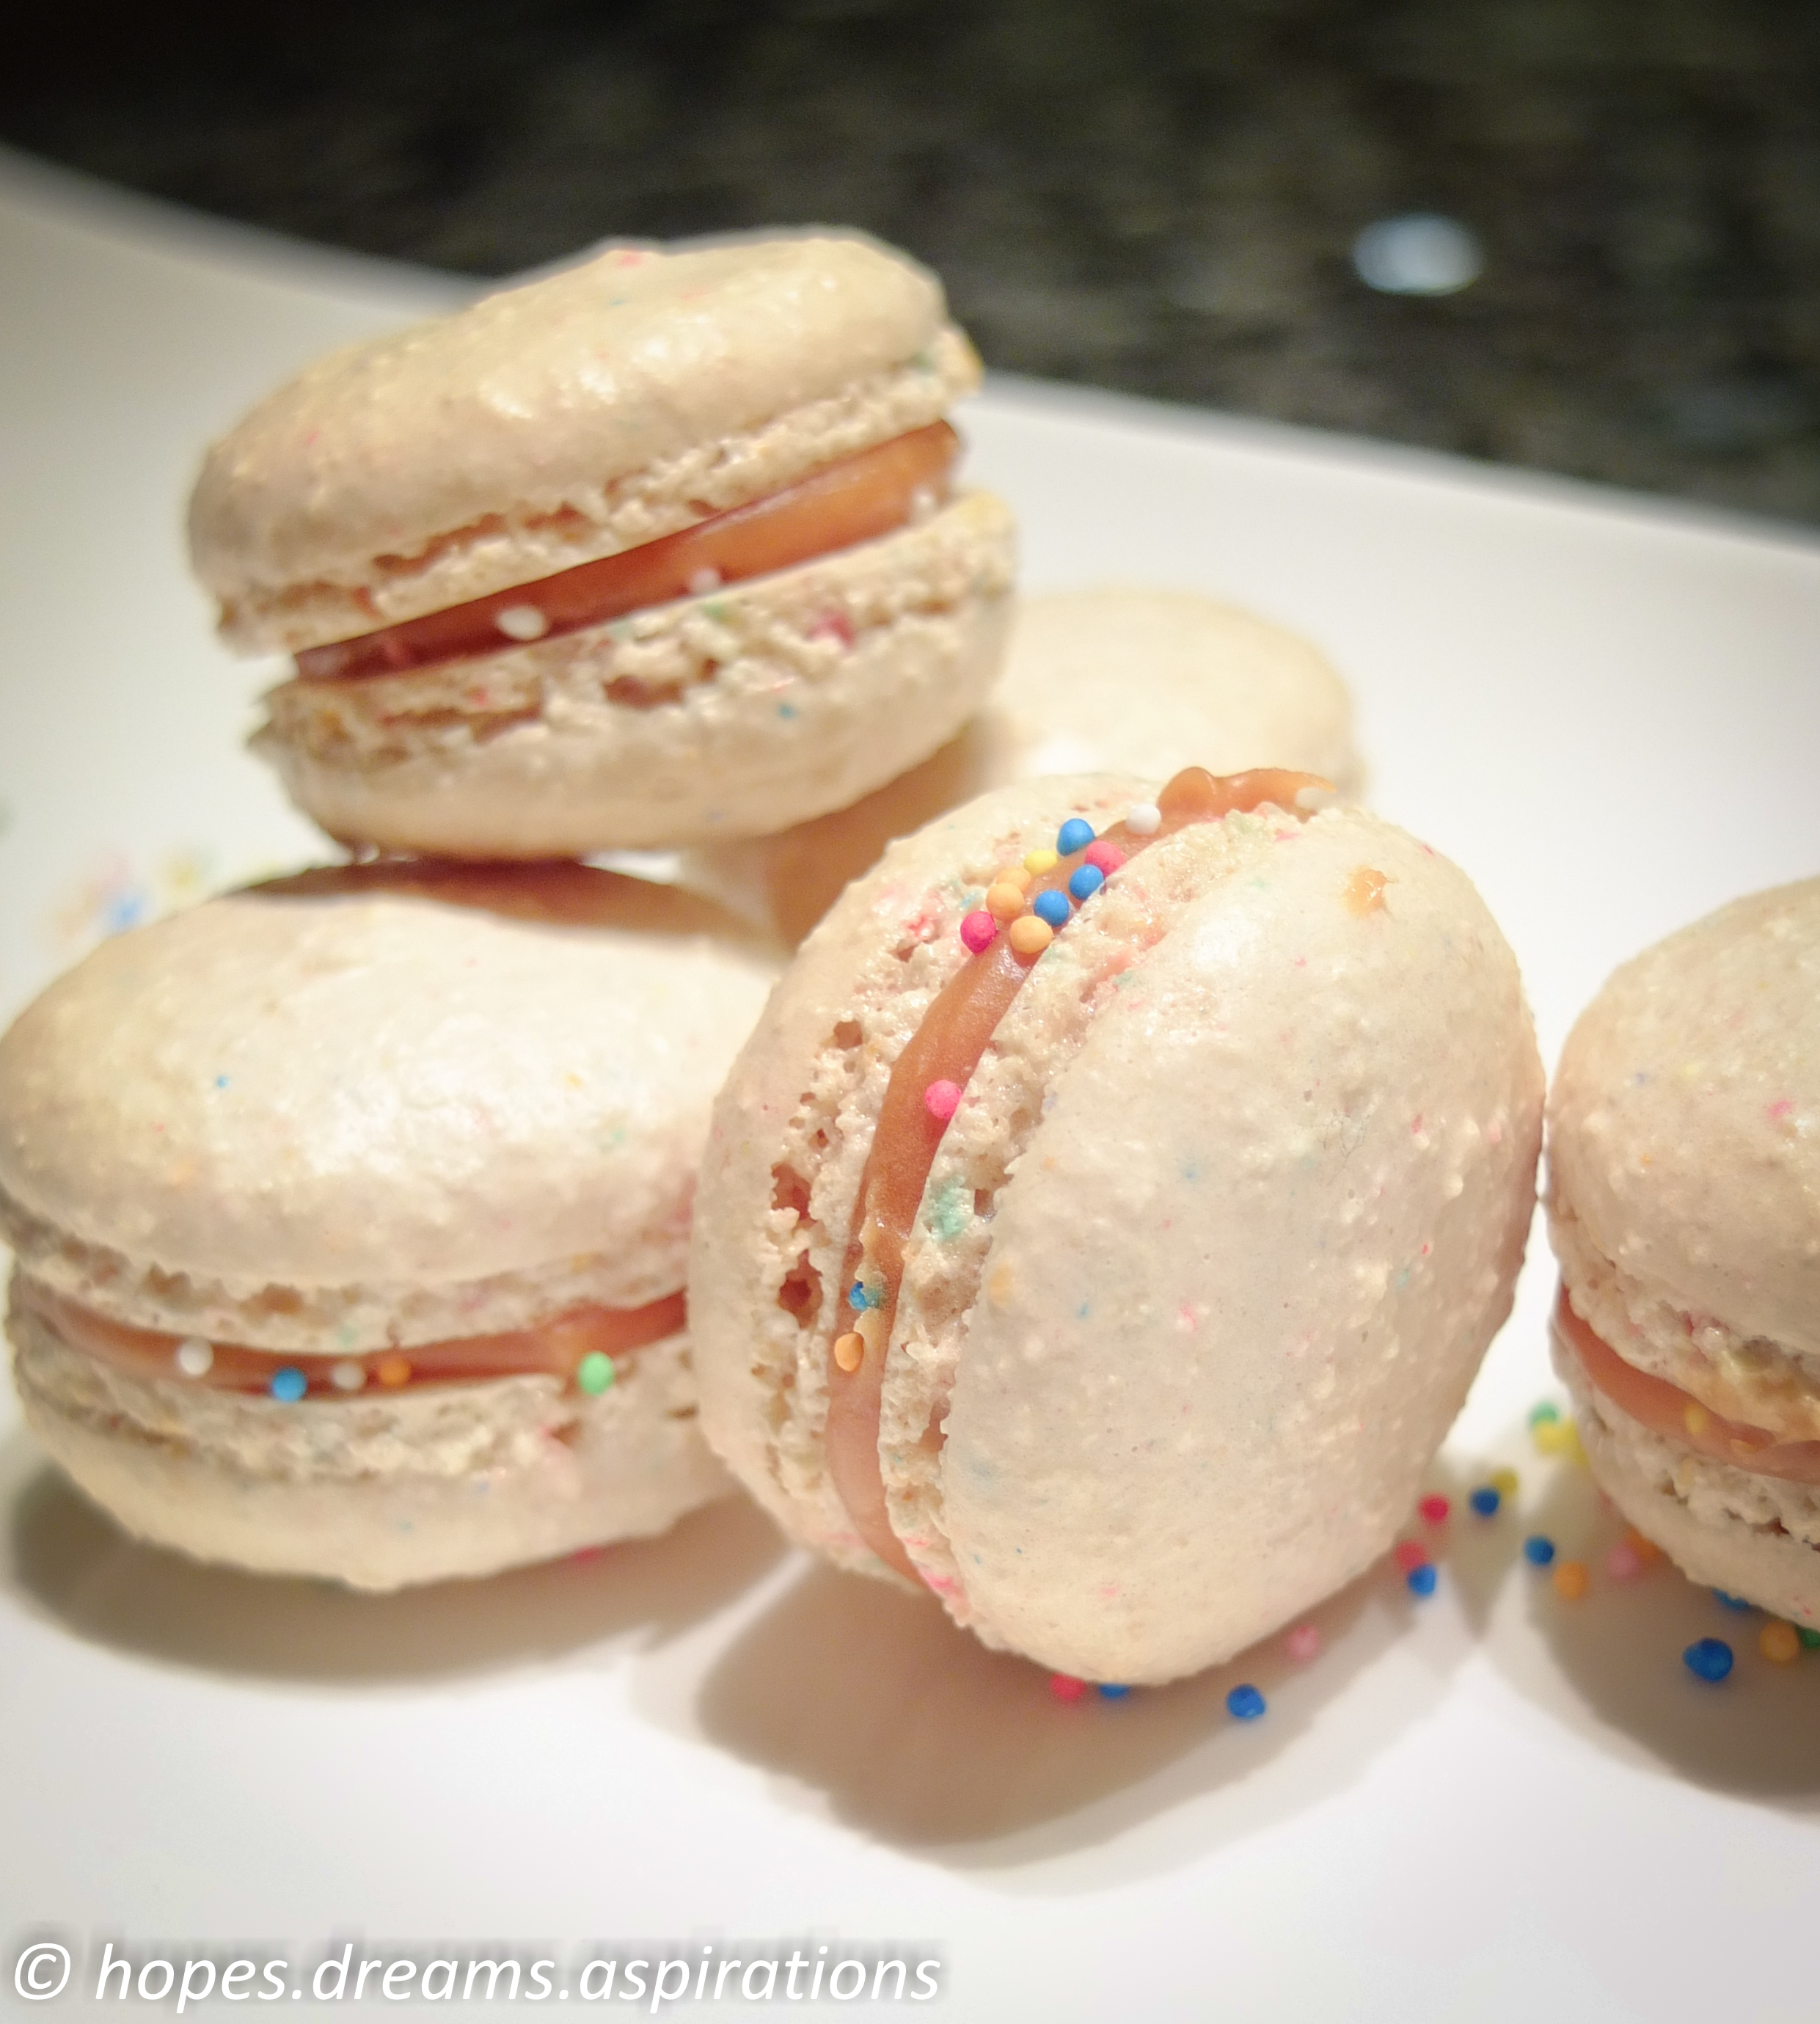 how to make caramel filling for macarons